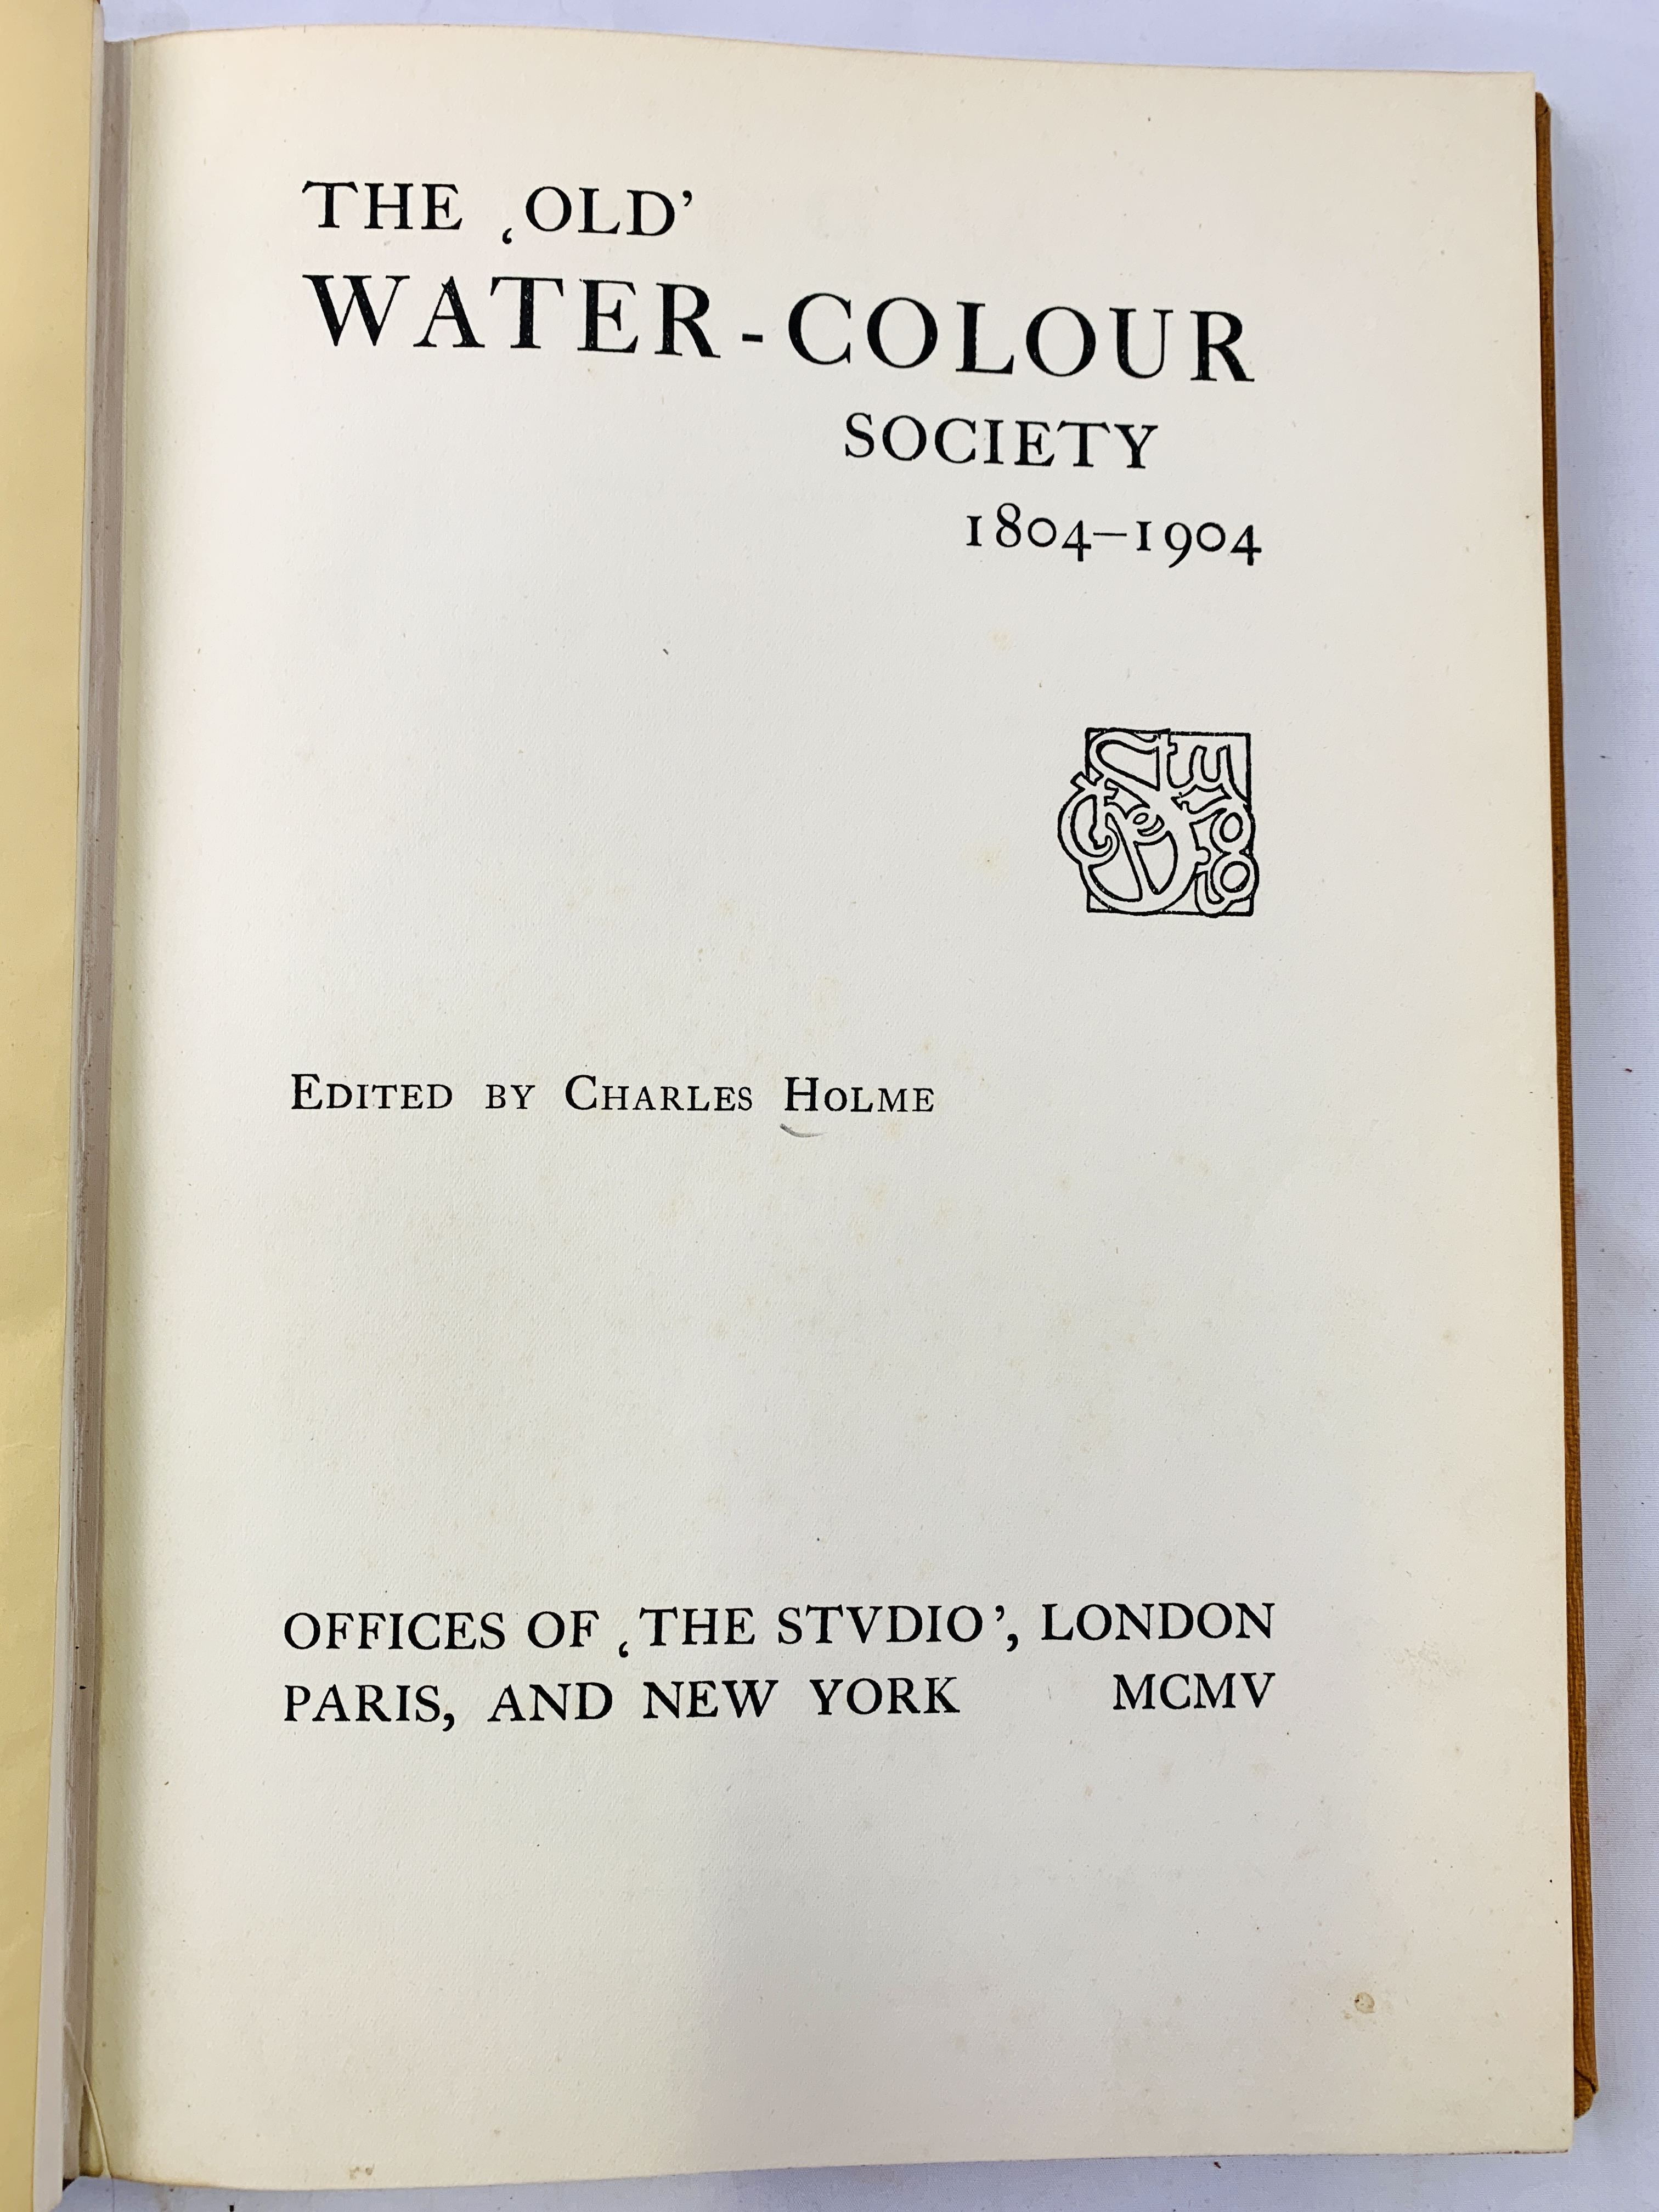 The Old Watercolour Society, 1804-1904, and Arts and Crafts, both edited by Charles Holme